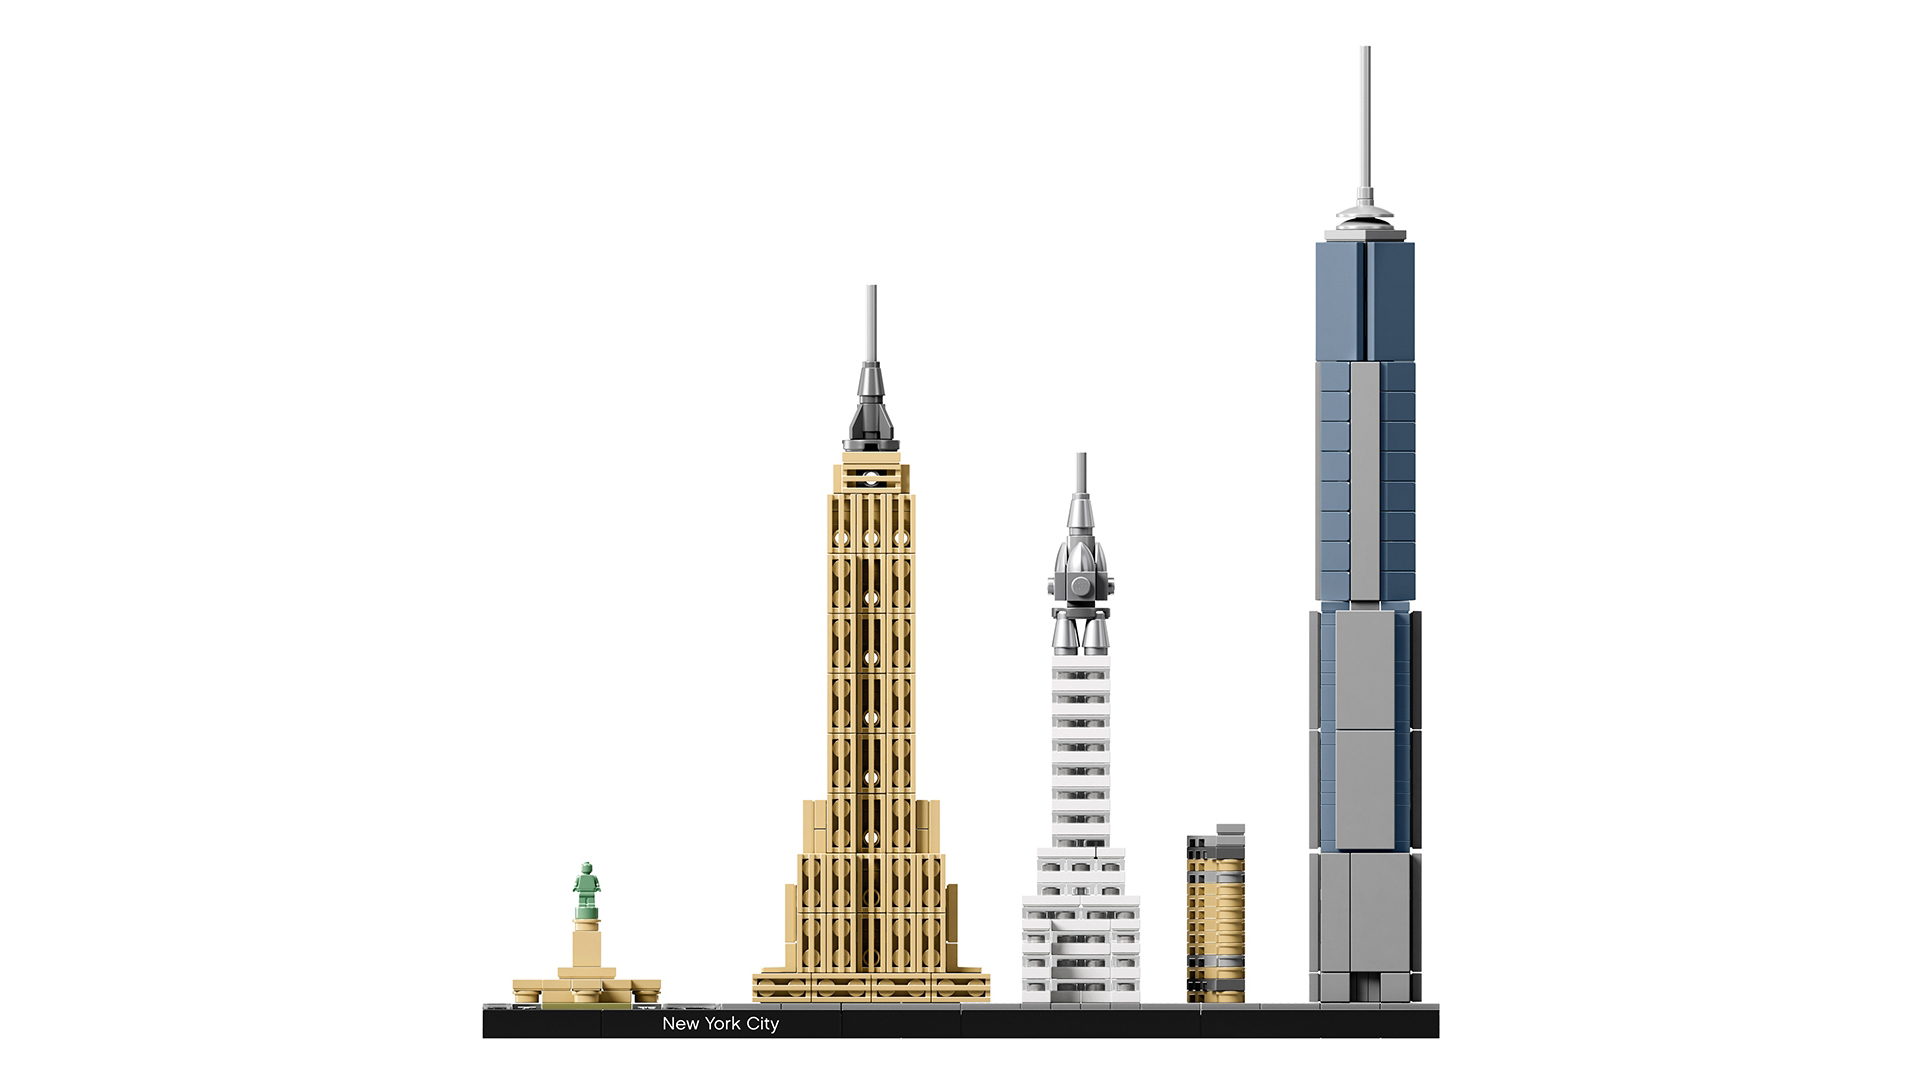 Best Lego Architecture sets: New York